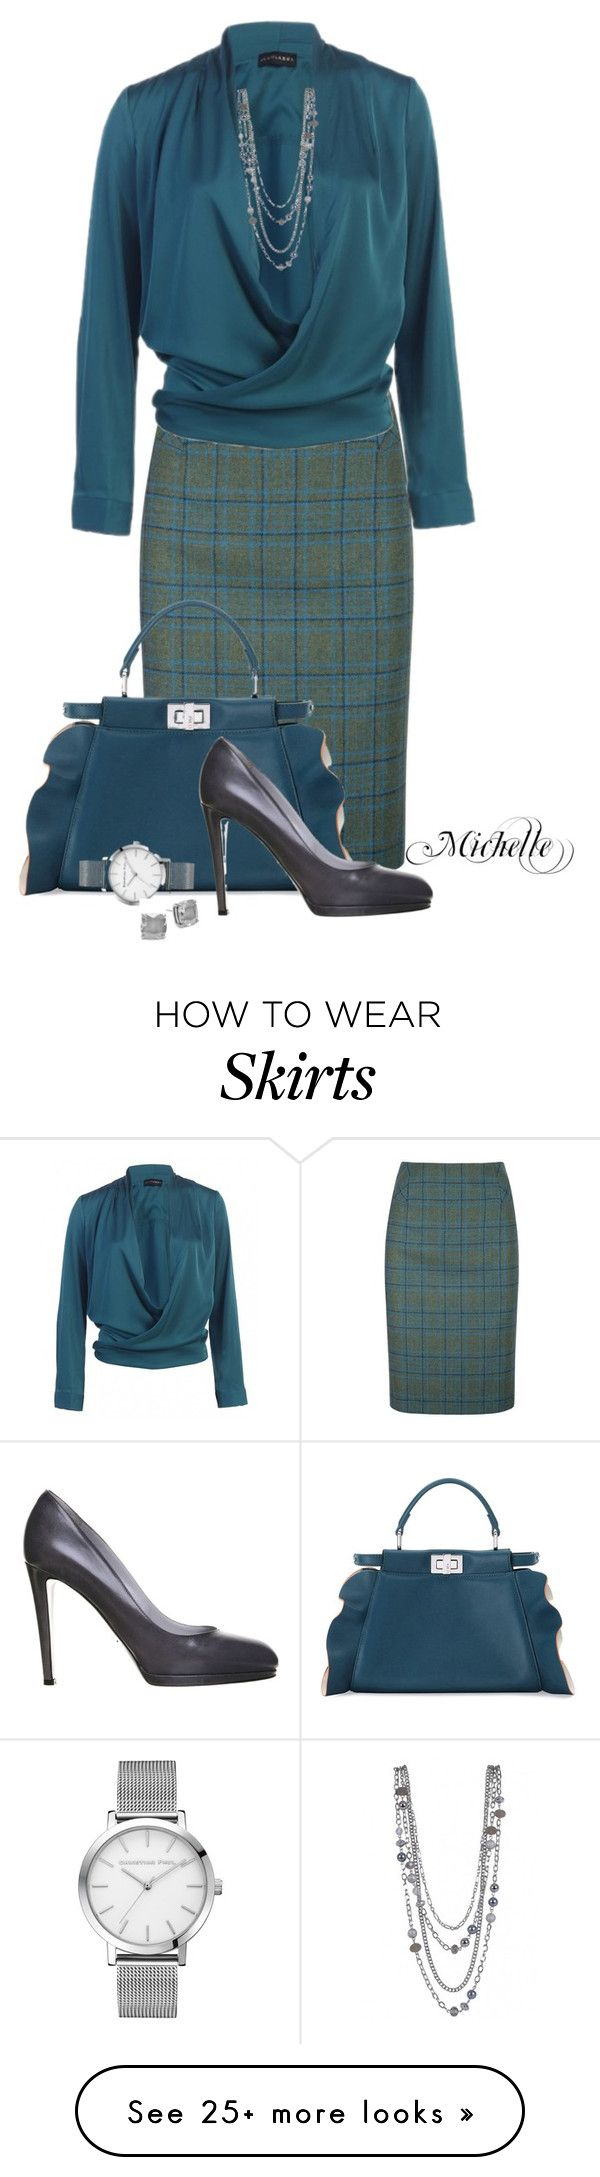 """Tweed in Teal"" by michellesherrill on Polyvore featuring DUBARRY, Fendi, Sergio Rossi and Kate Spade"